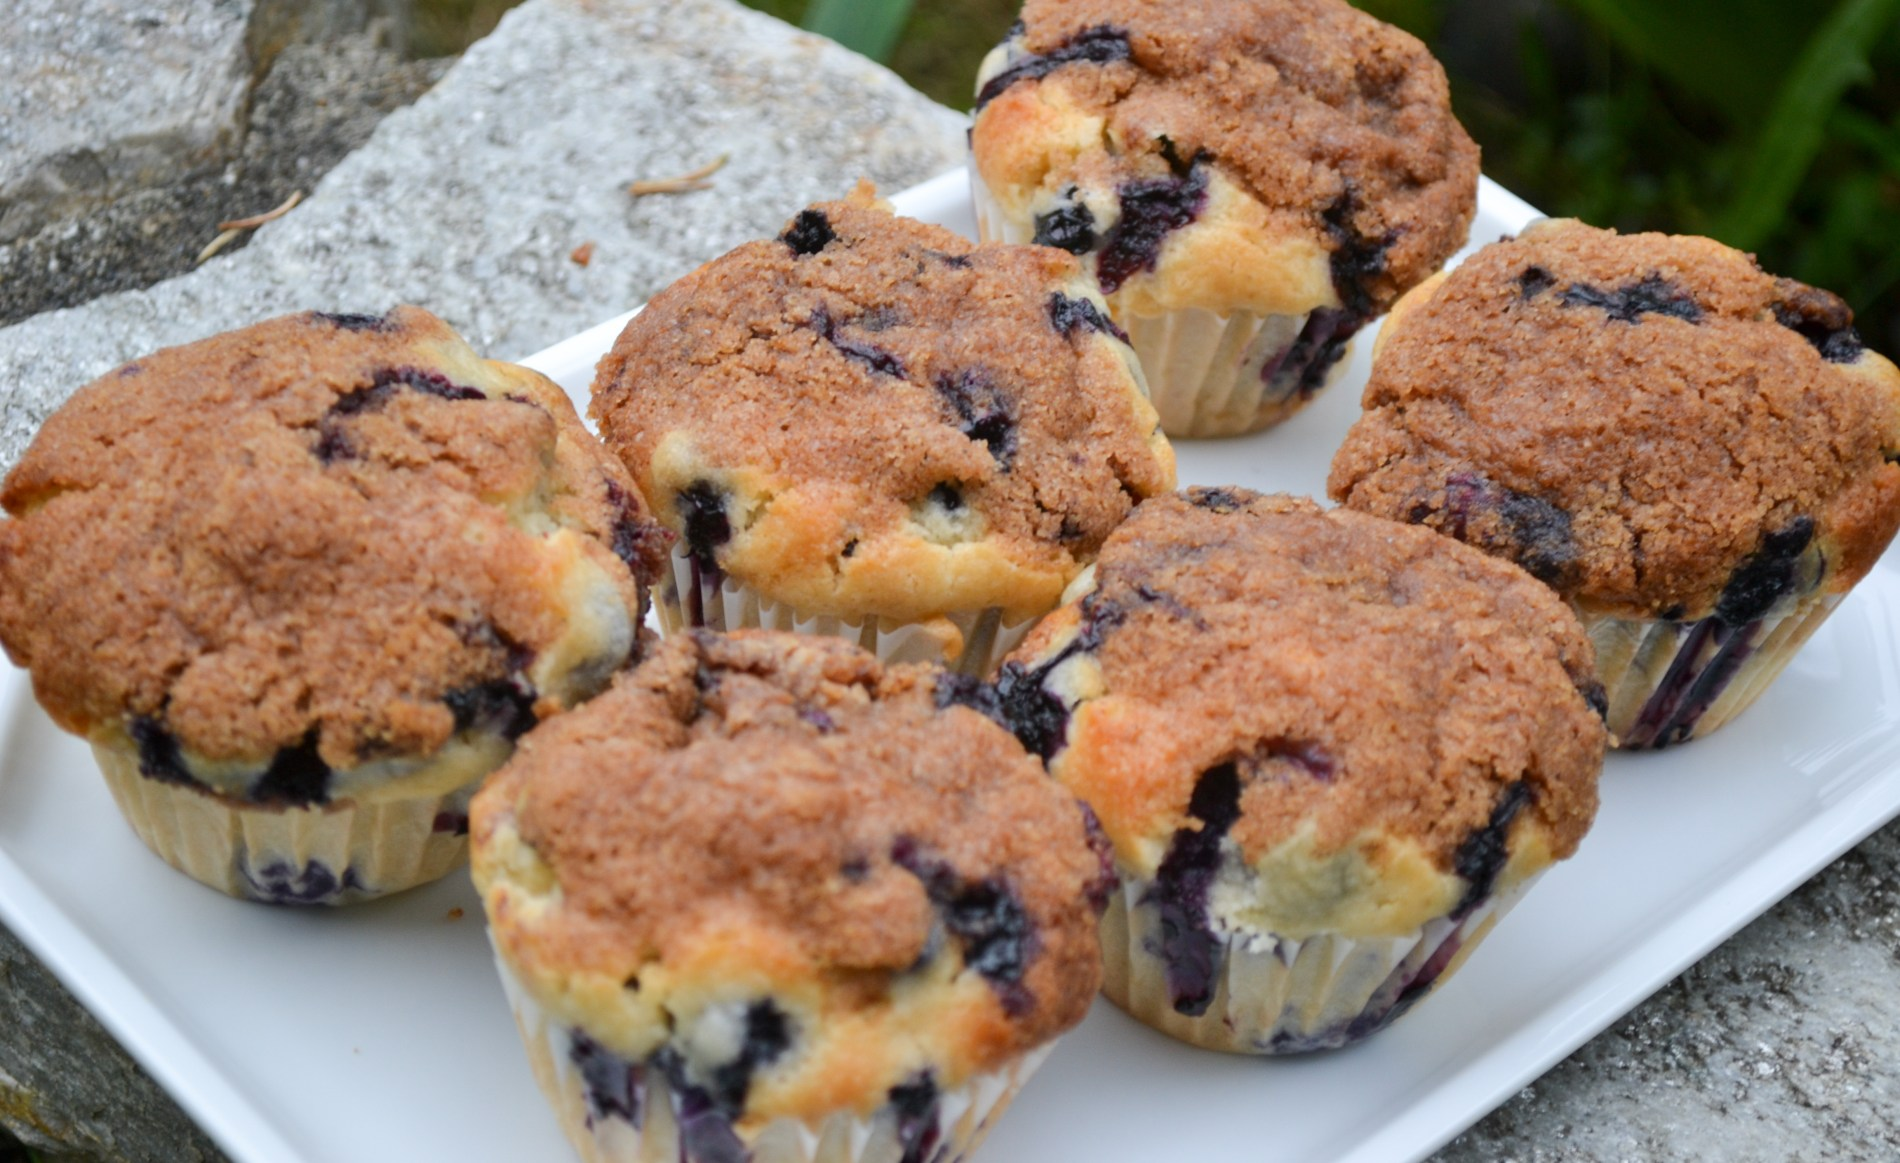 These are the best blueberry muffins ever! They're sweet, moist and buttery.